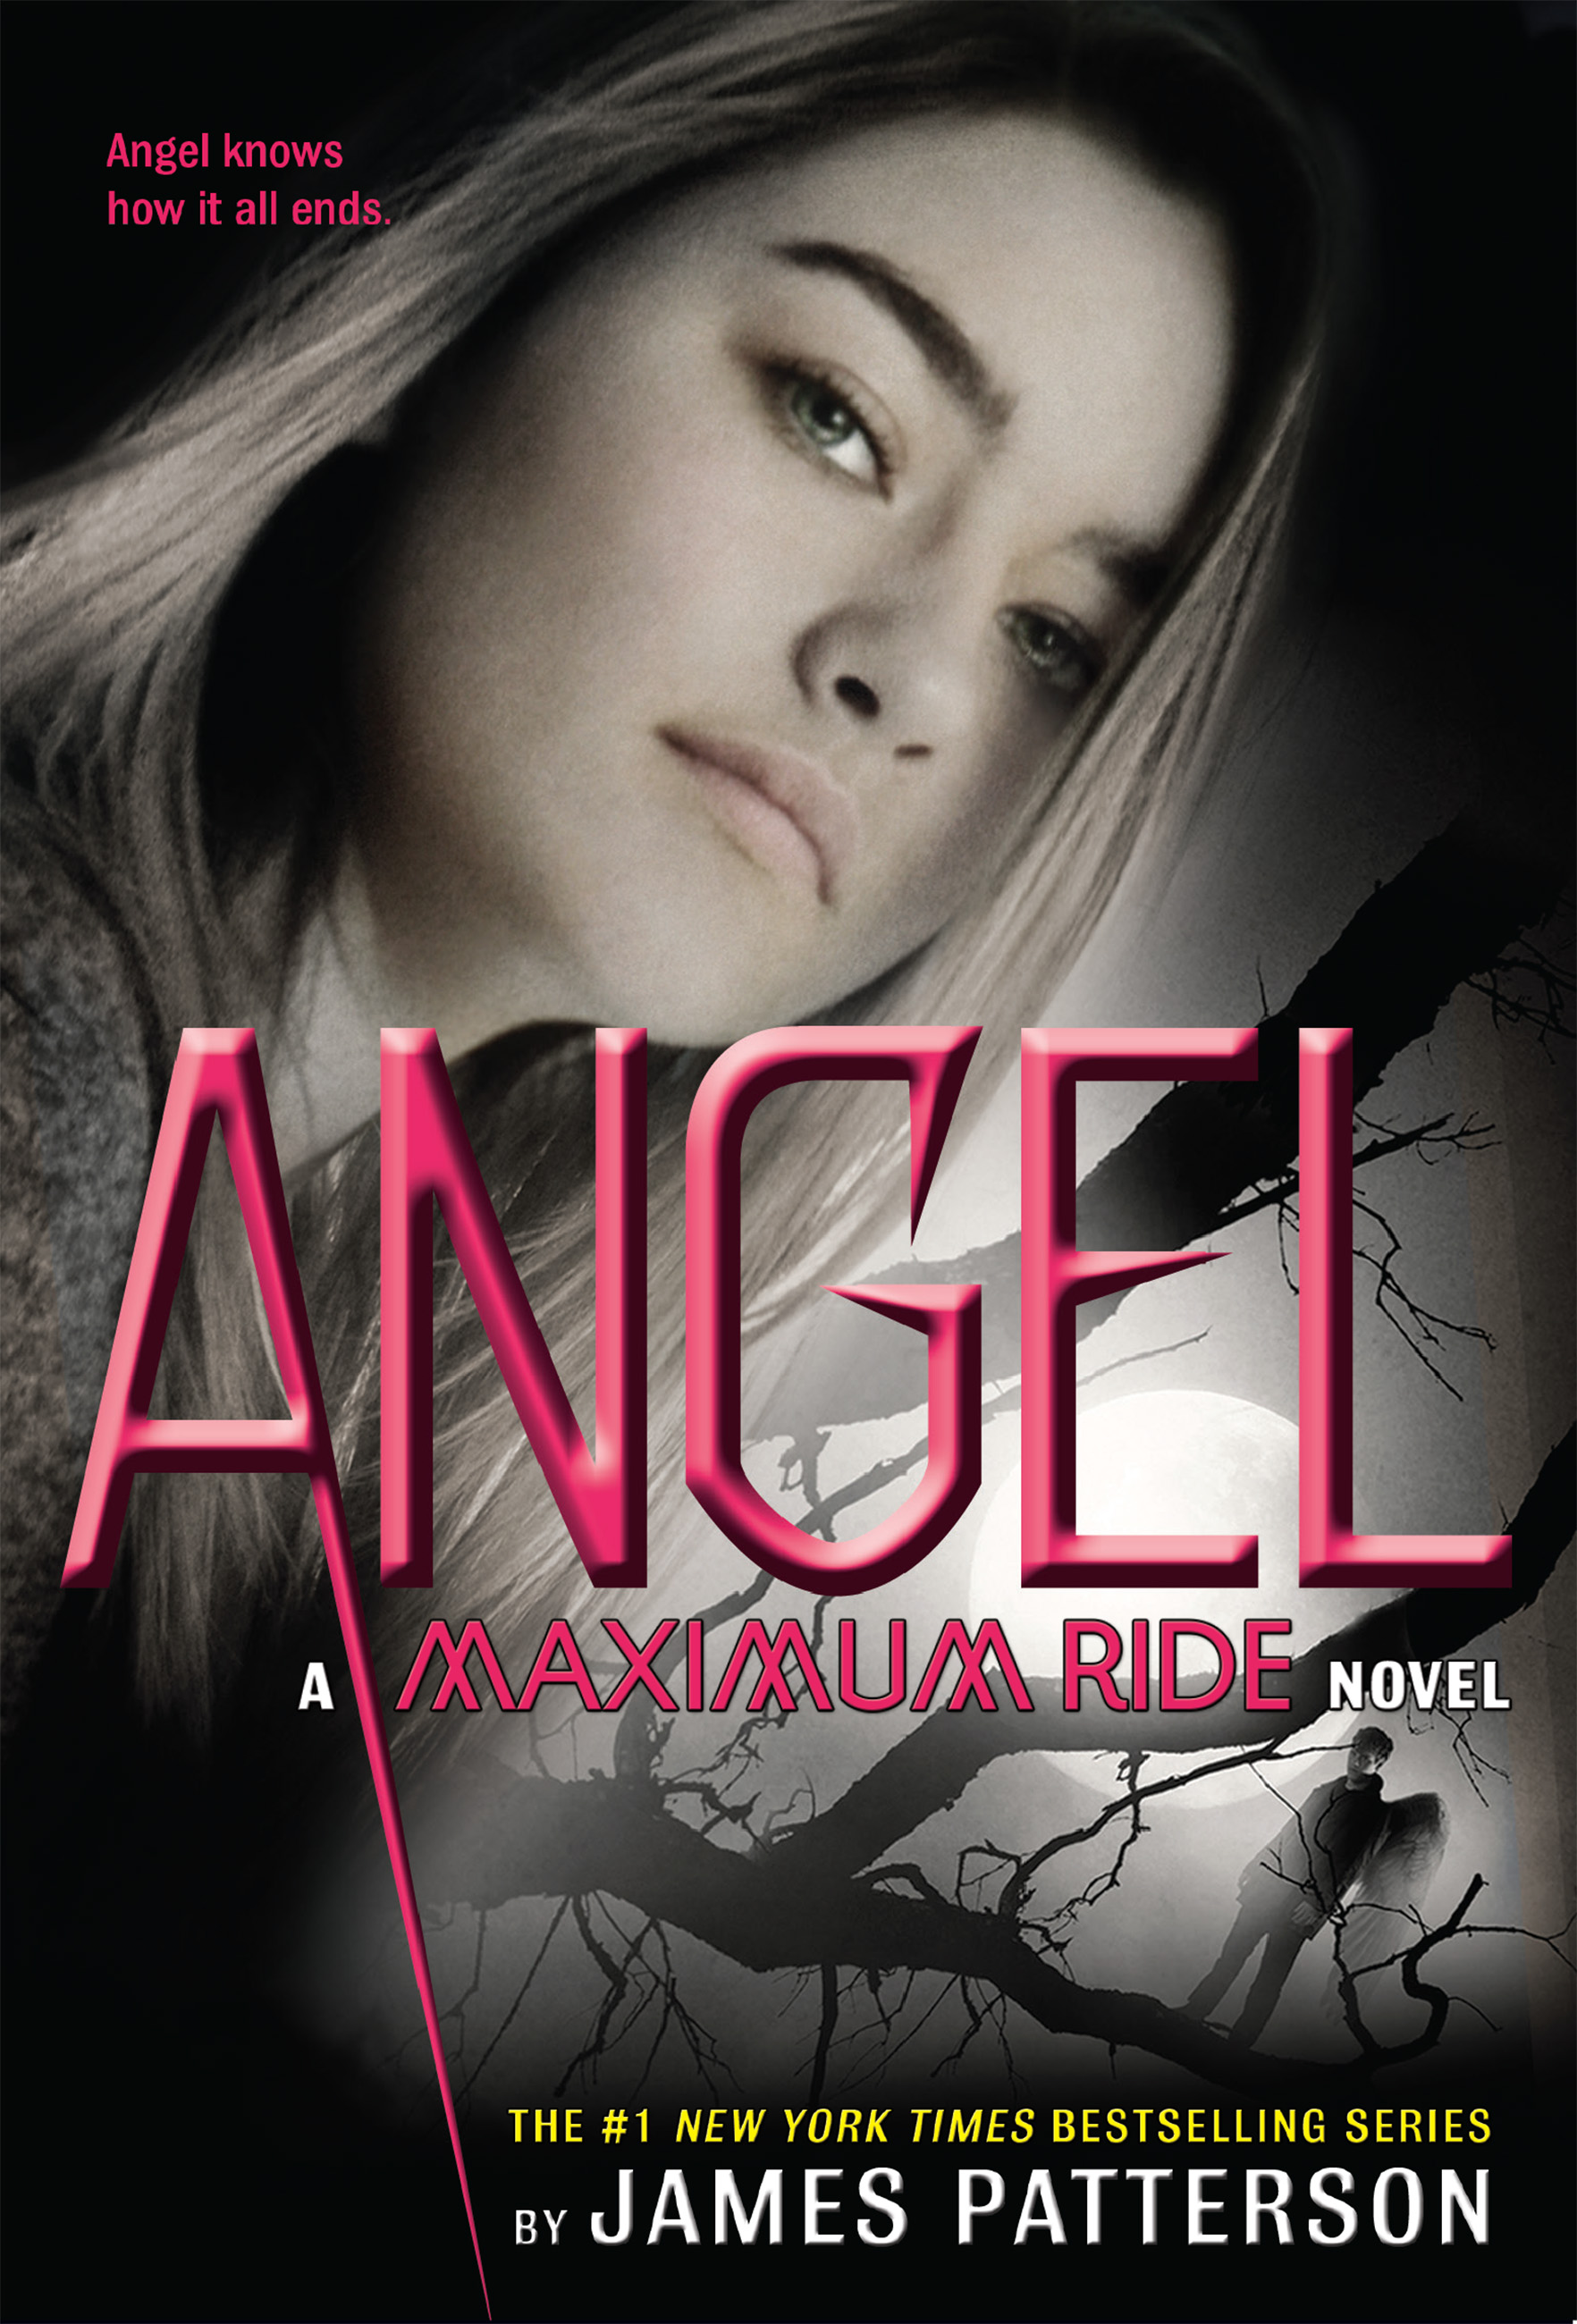 Angel A Maximum Ride Novel